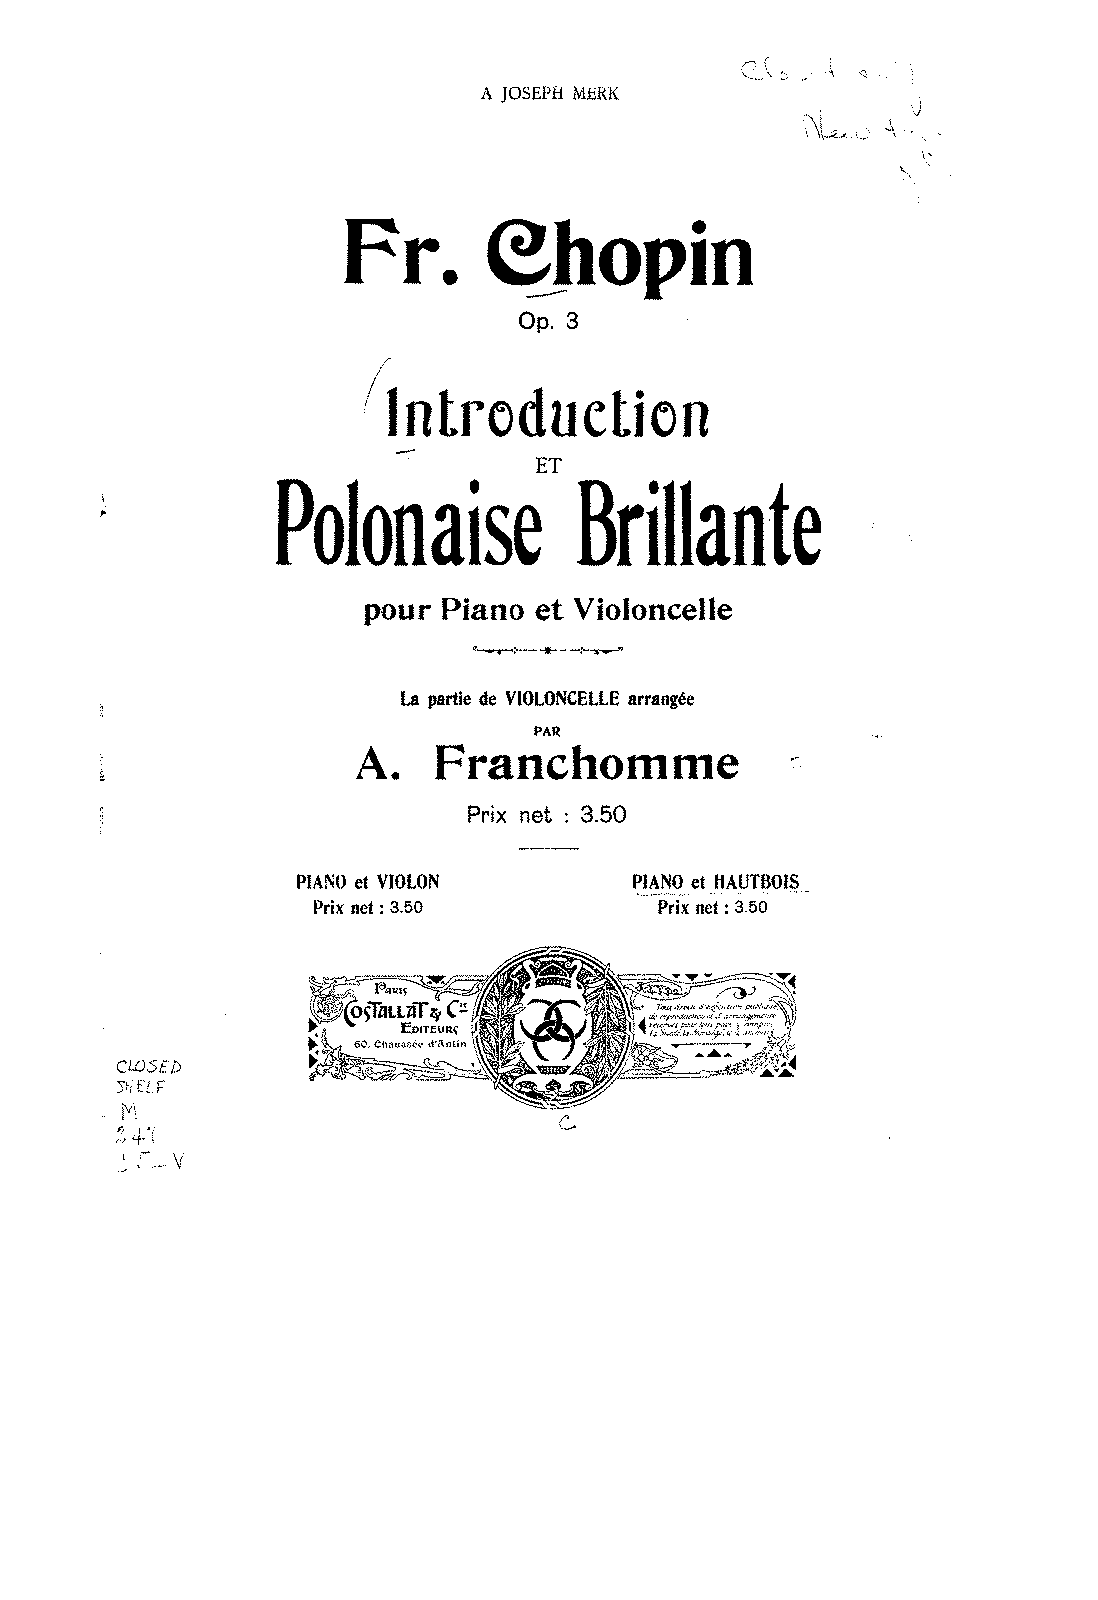 PMLP05649-Chopin - Introduction and Polonaise Brillante for Cello and Piano Op3 arr oboe by (Verroust) oboe.pdf